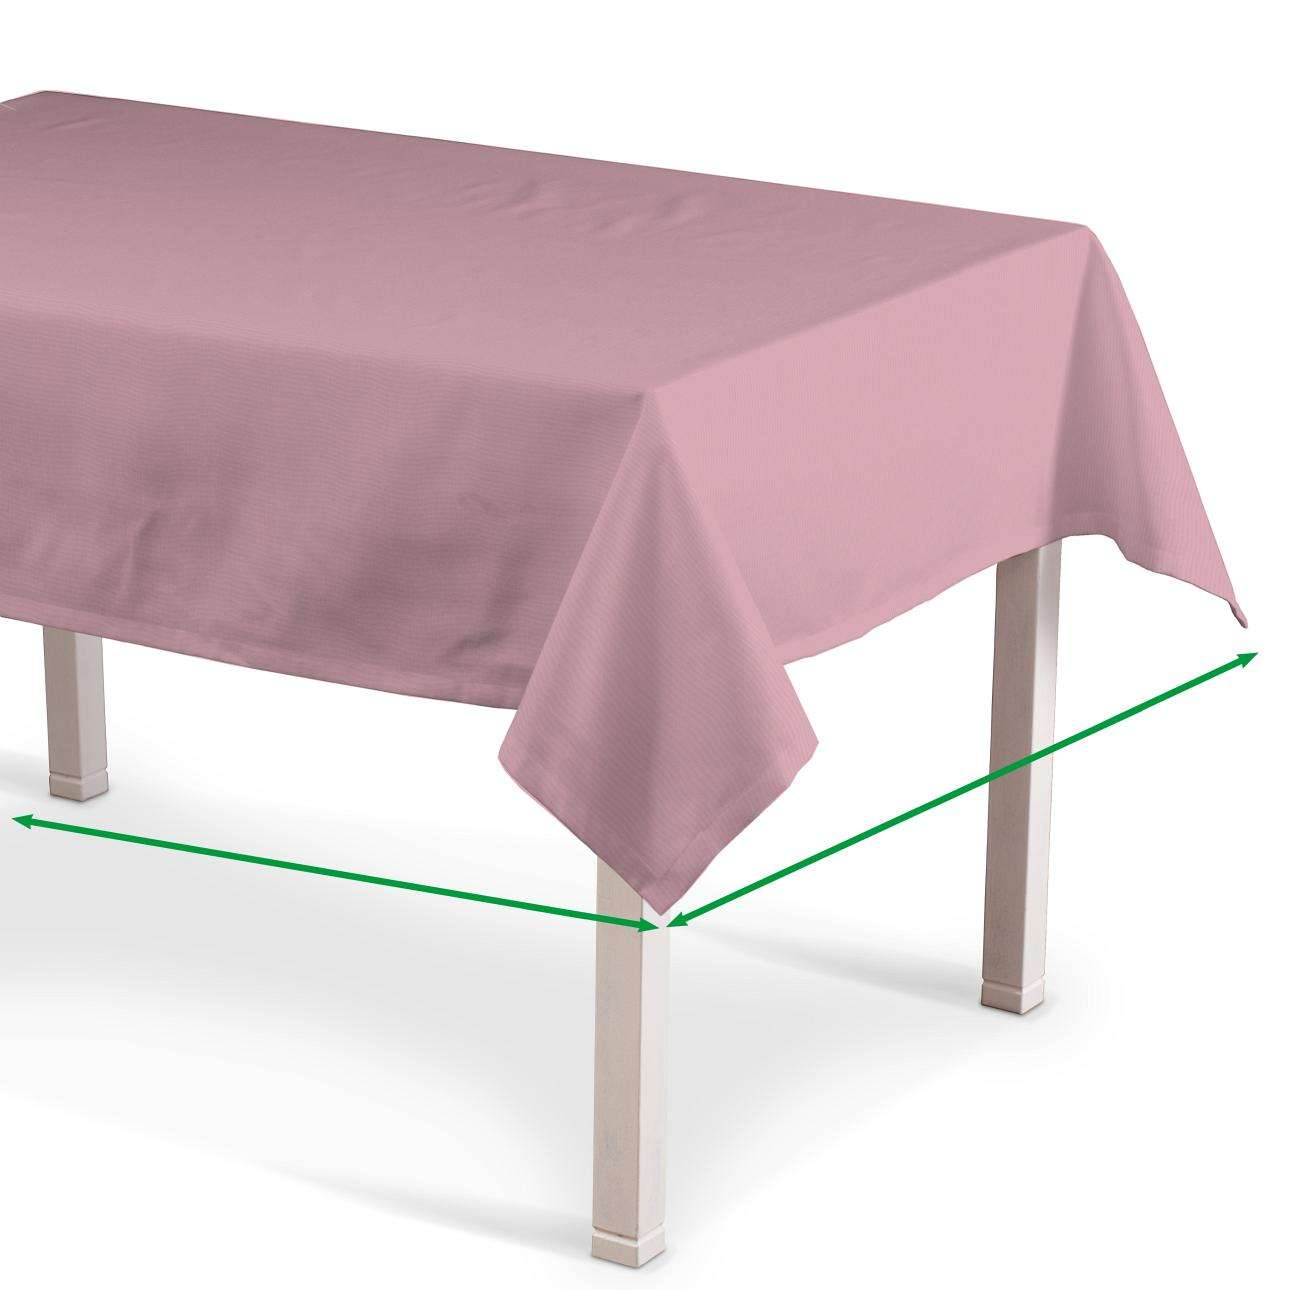 Rectangular tablecloth in collection Milano, fabric: 150-35